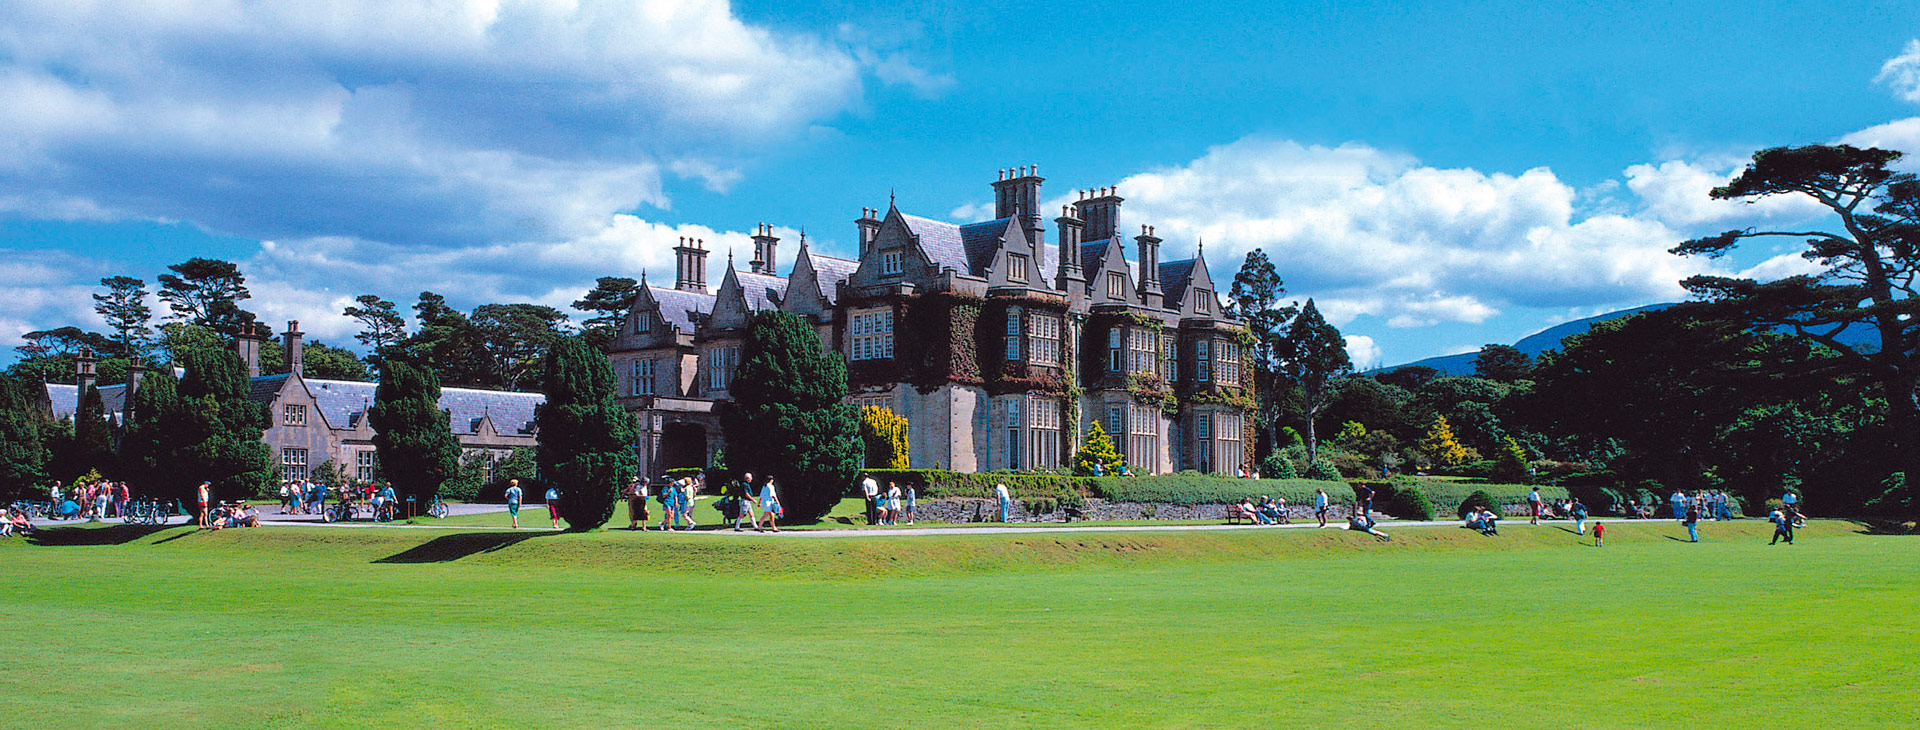 Muckross House is located in Killarney National Park, in County Kerry